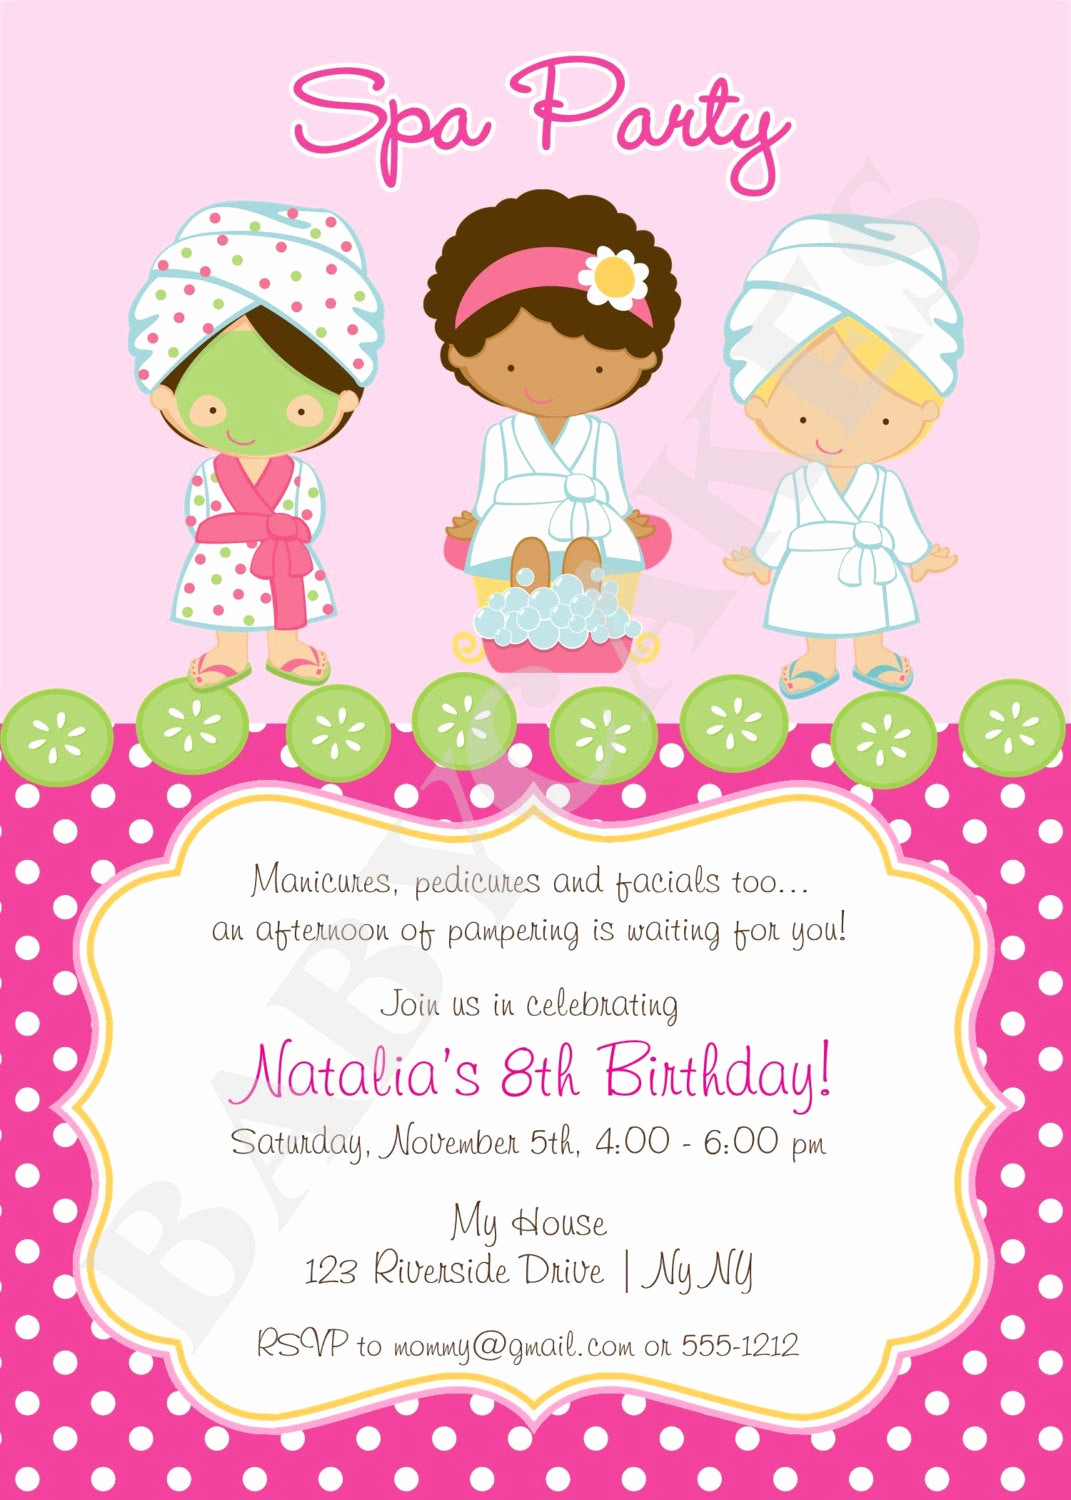 Spa Party Invitation Templates Inspirational Spa Party Invitation Diy Print Your Own Matching by